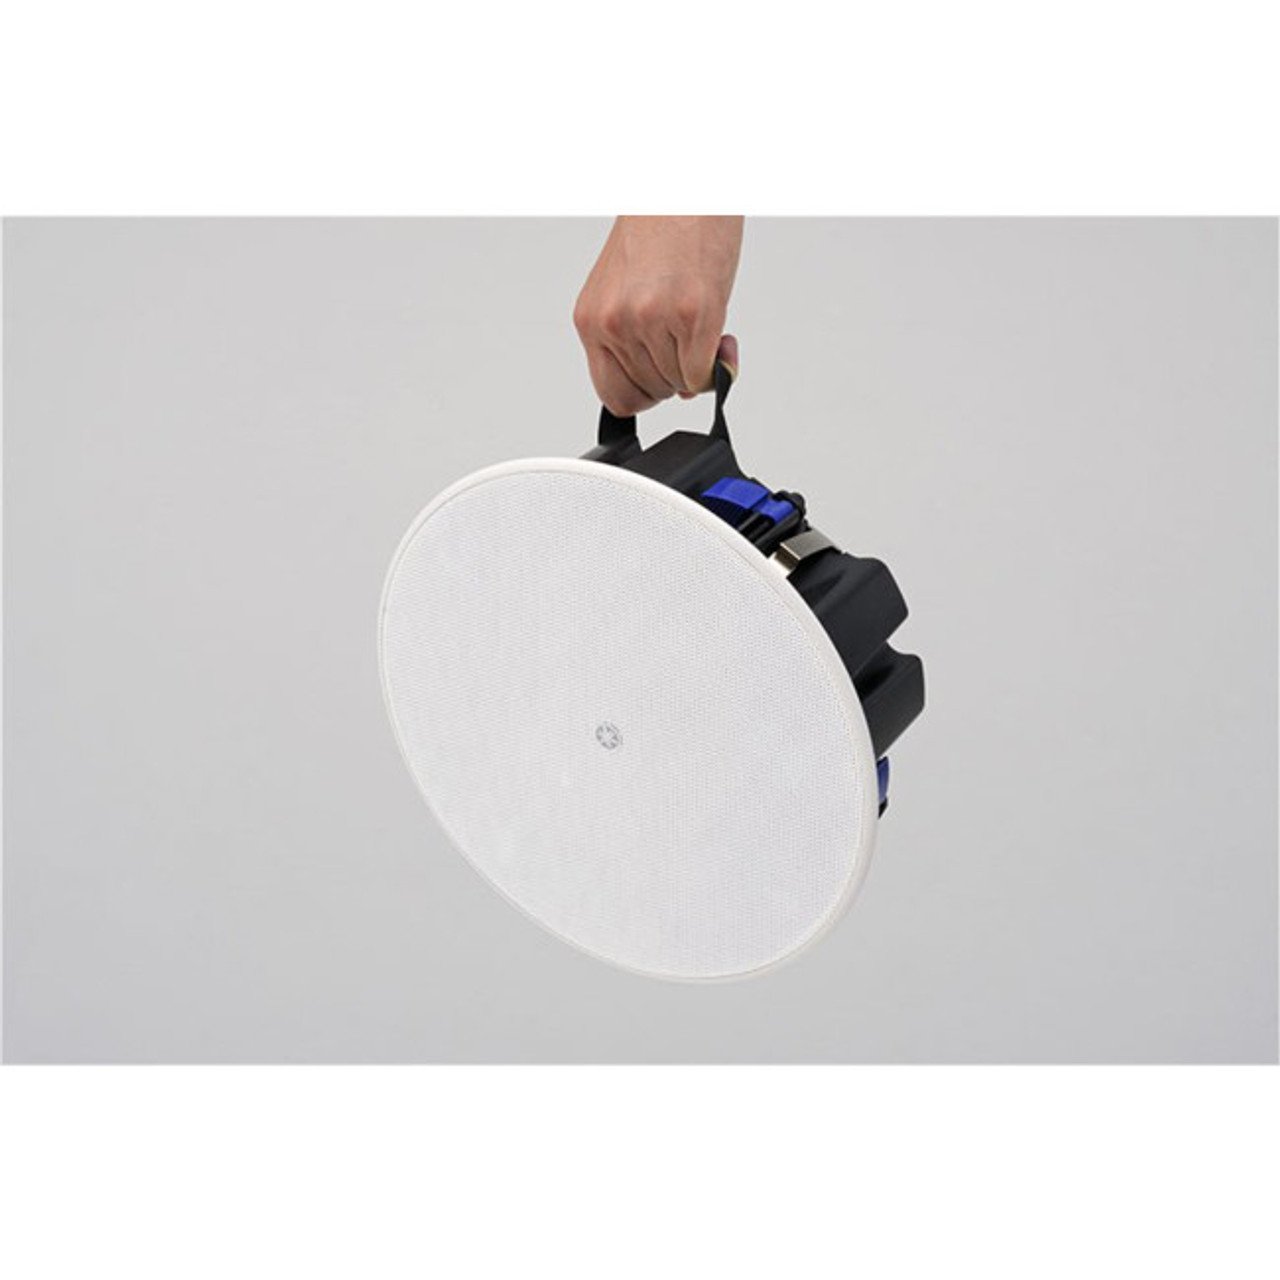 "Yamaha VXC3FB 3.5"" 8 Ohm OR 100V Line Ceiling Speaker - HURRY LAST 6!"